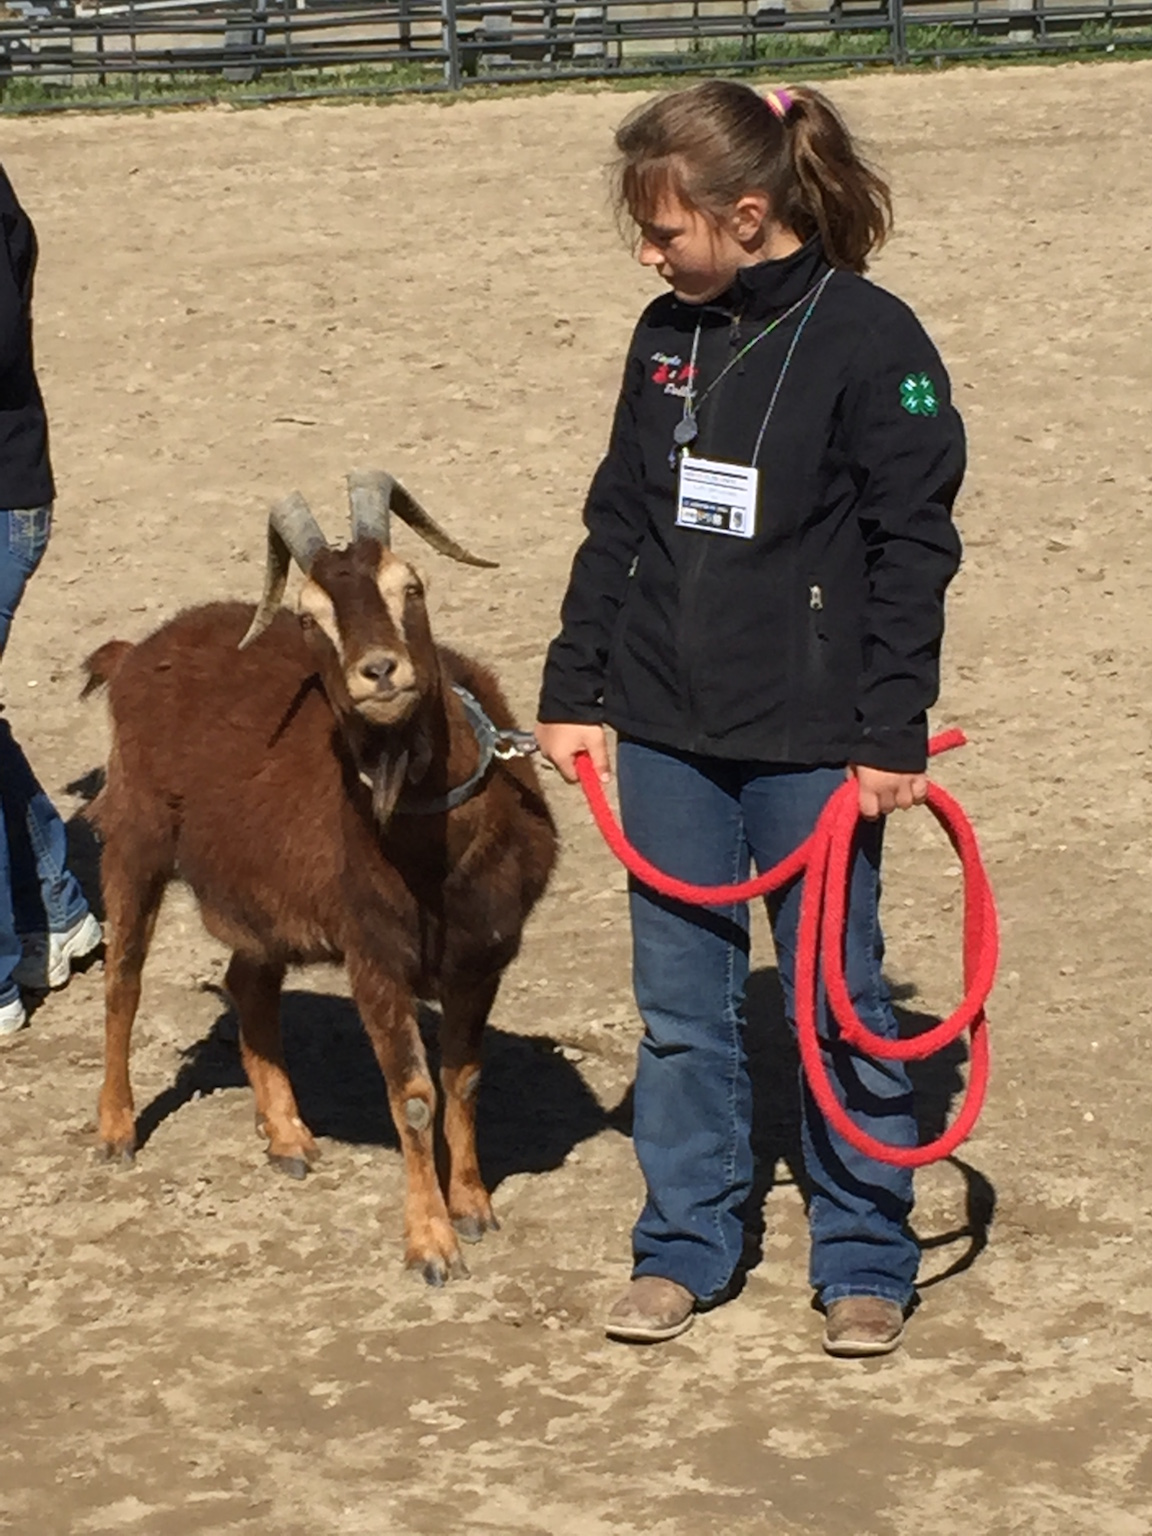 girl showing a goat